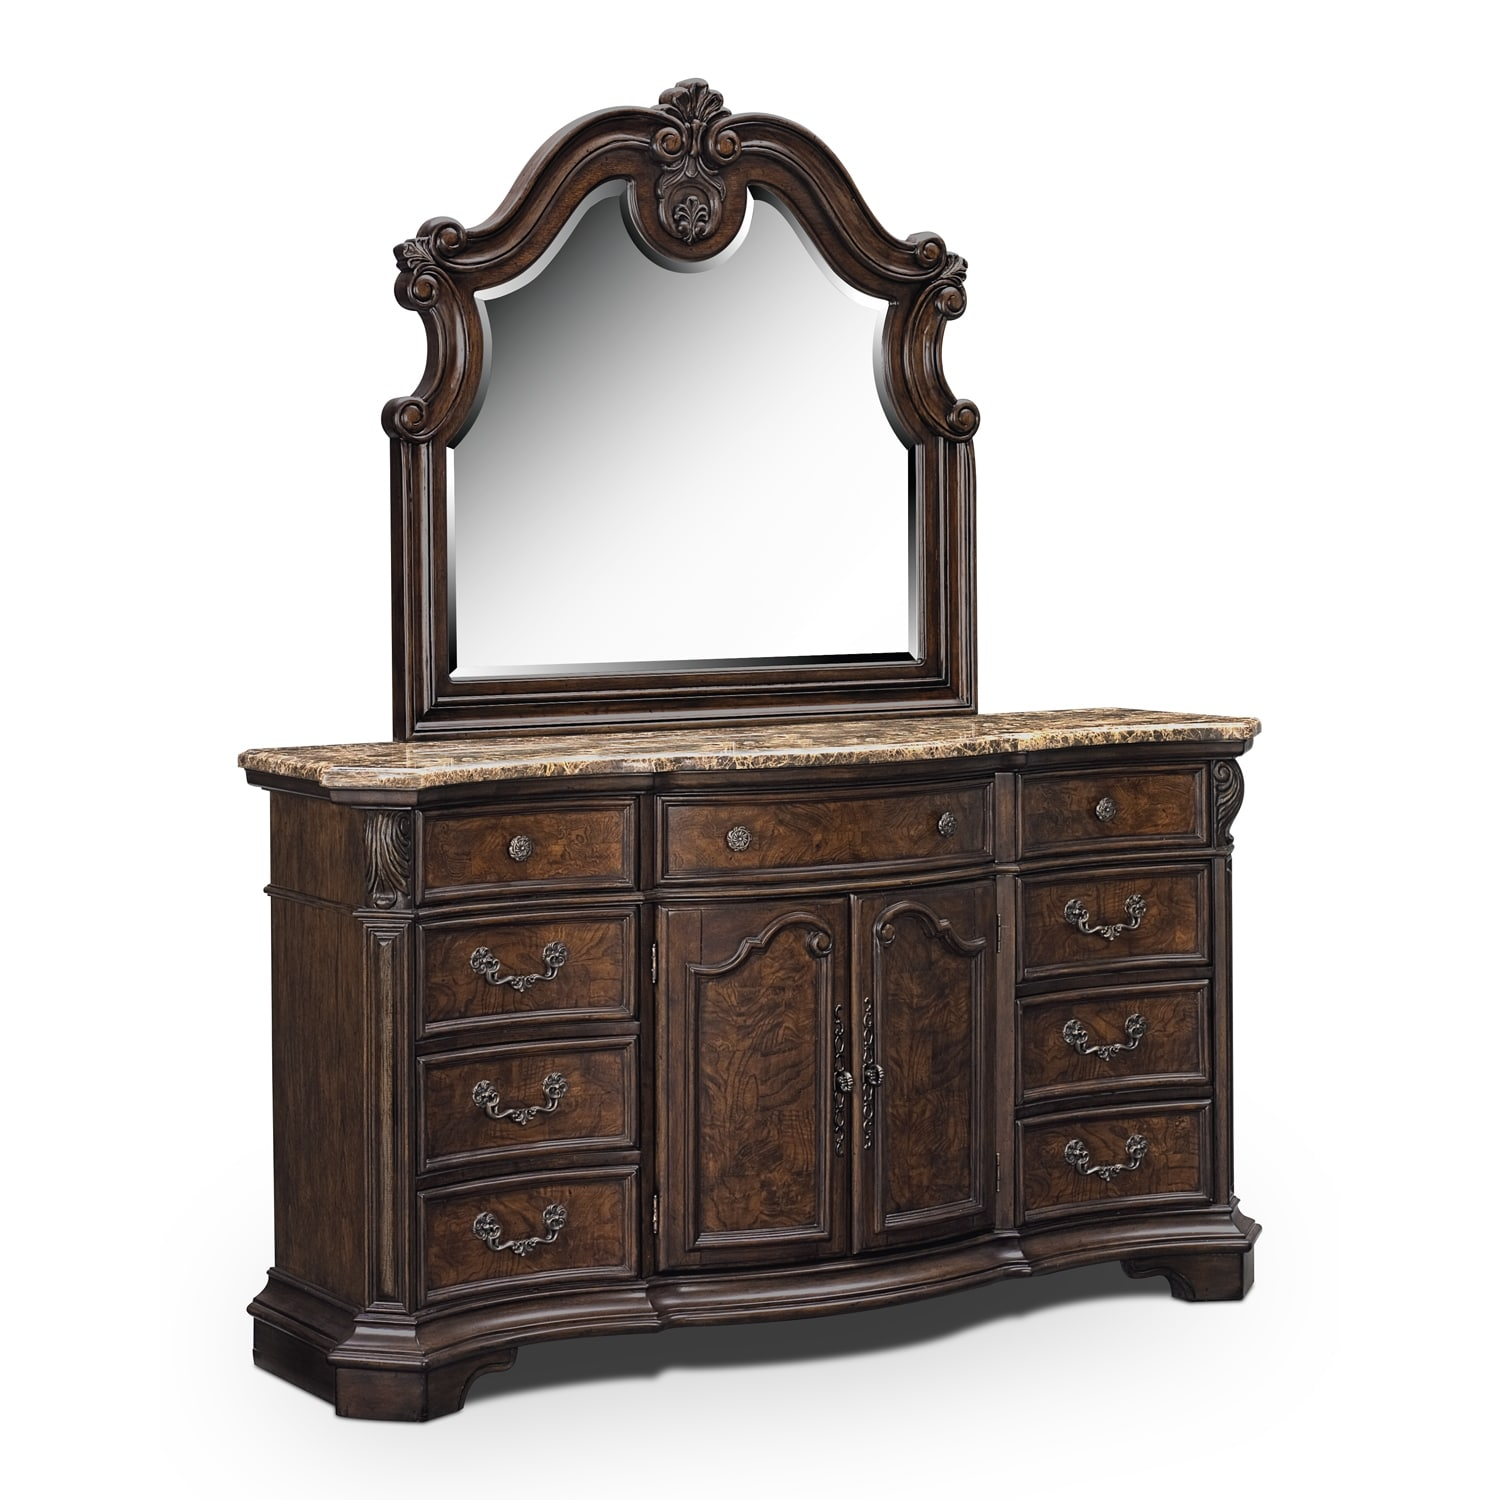 Bedroom Furniture - Monticello Dresser and Mirror - Pecan